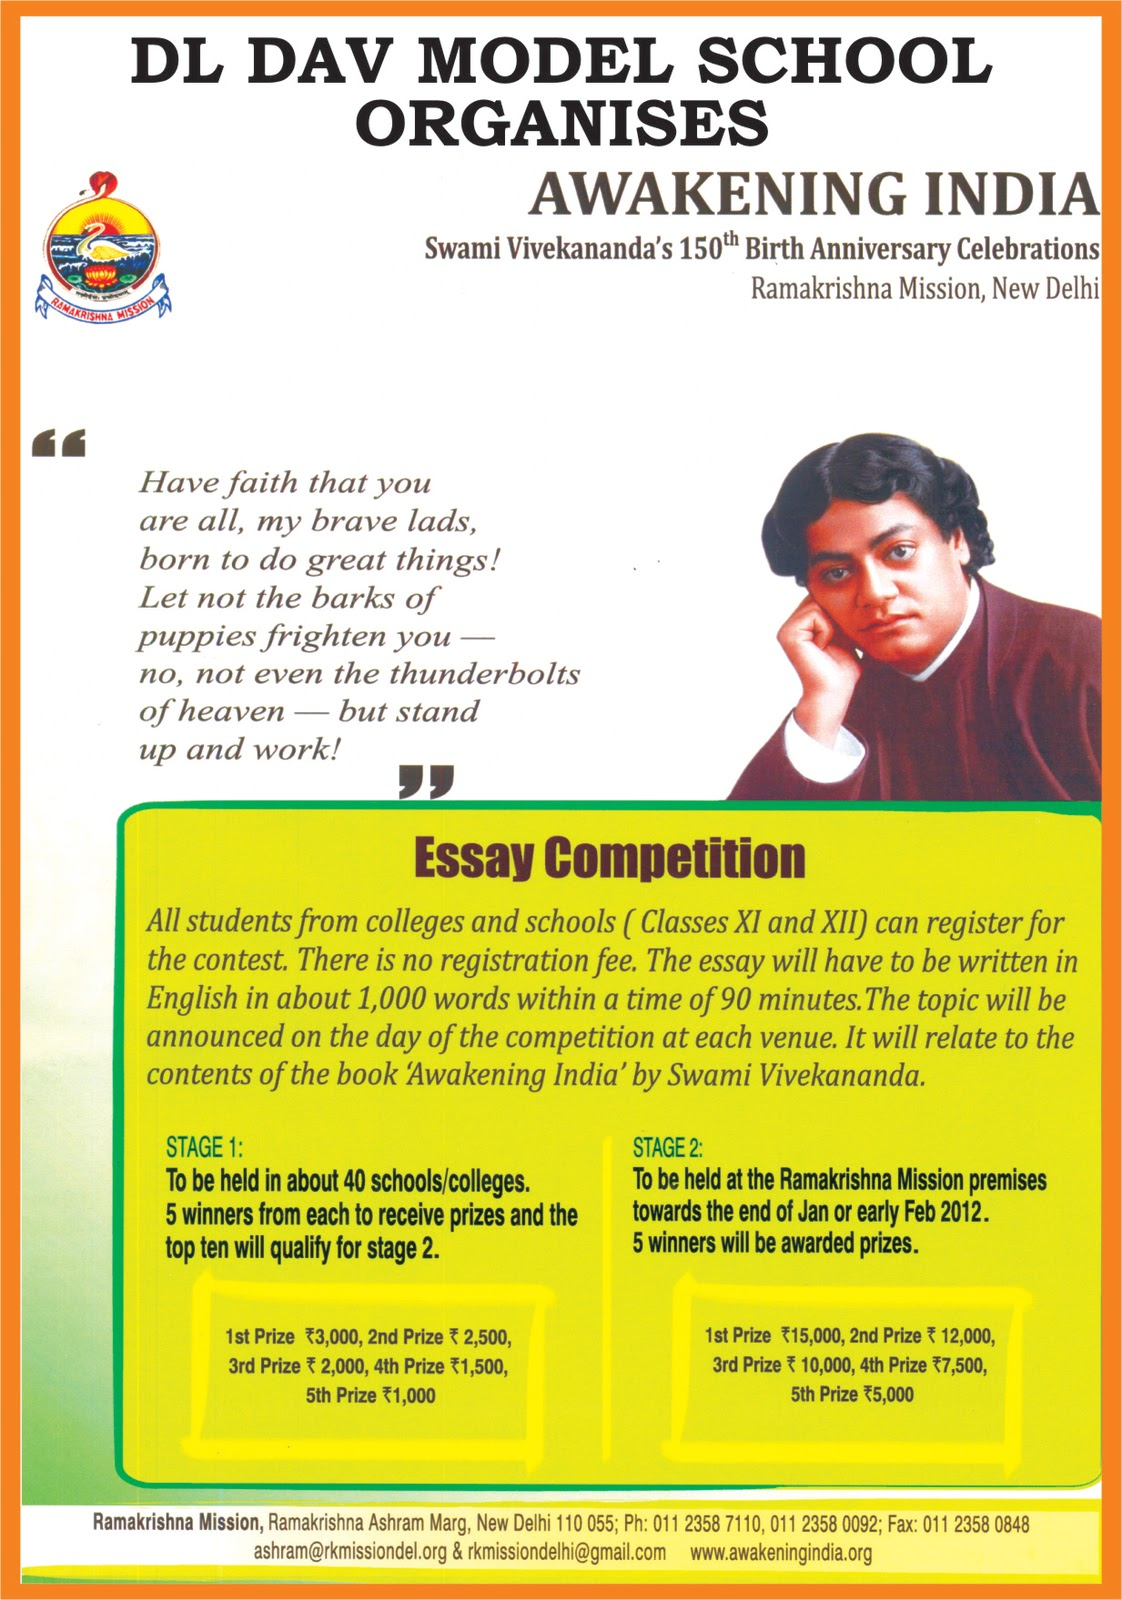 blissful earth  essay competition at dldav school on vivevakanand